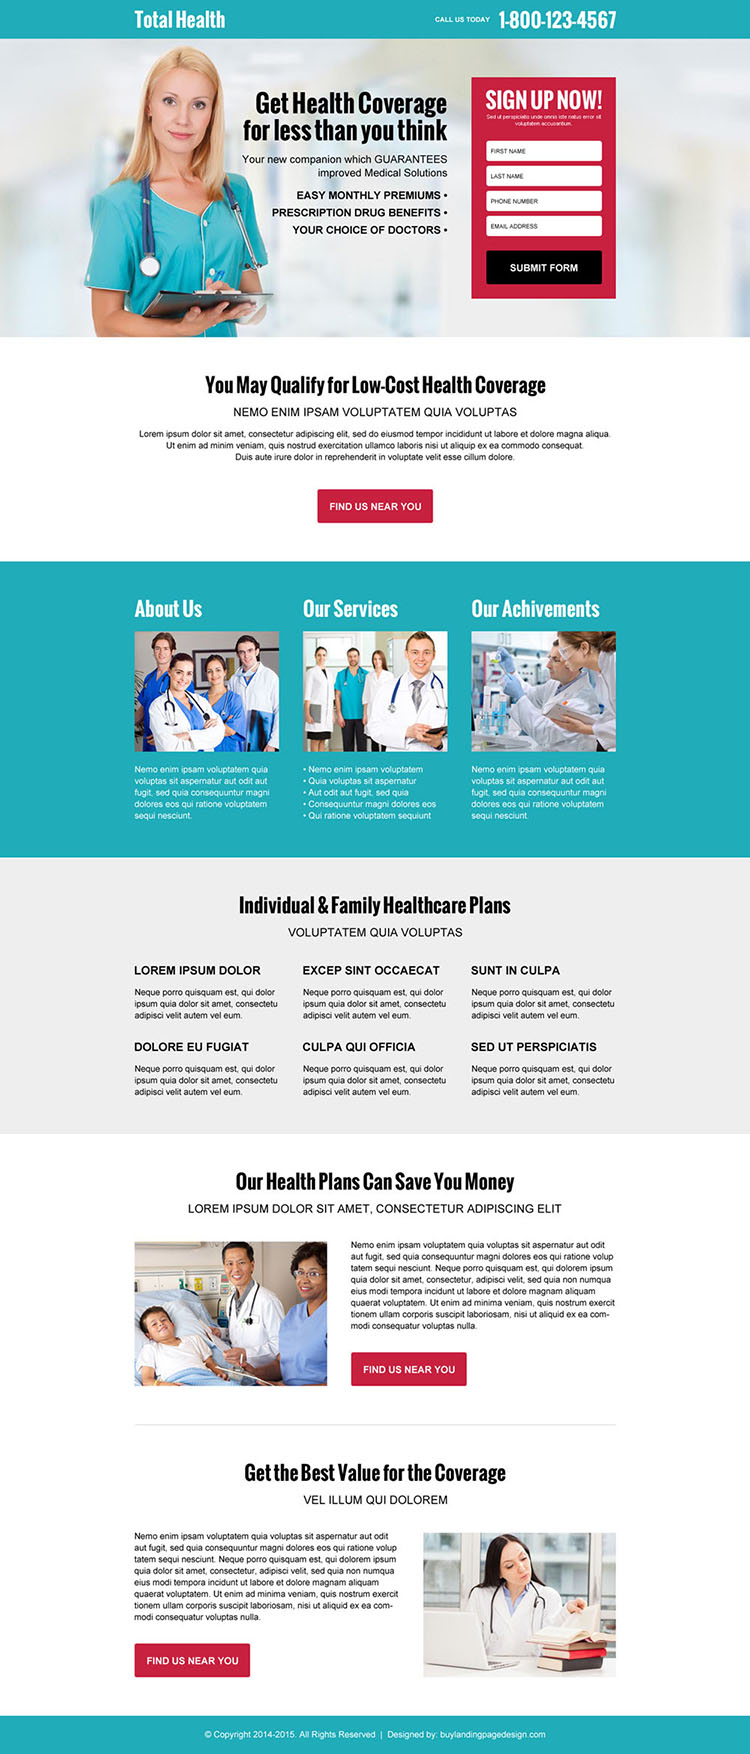 free medical health coverage quote high converting responsive landing page design